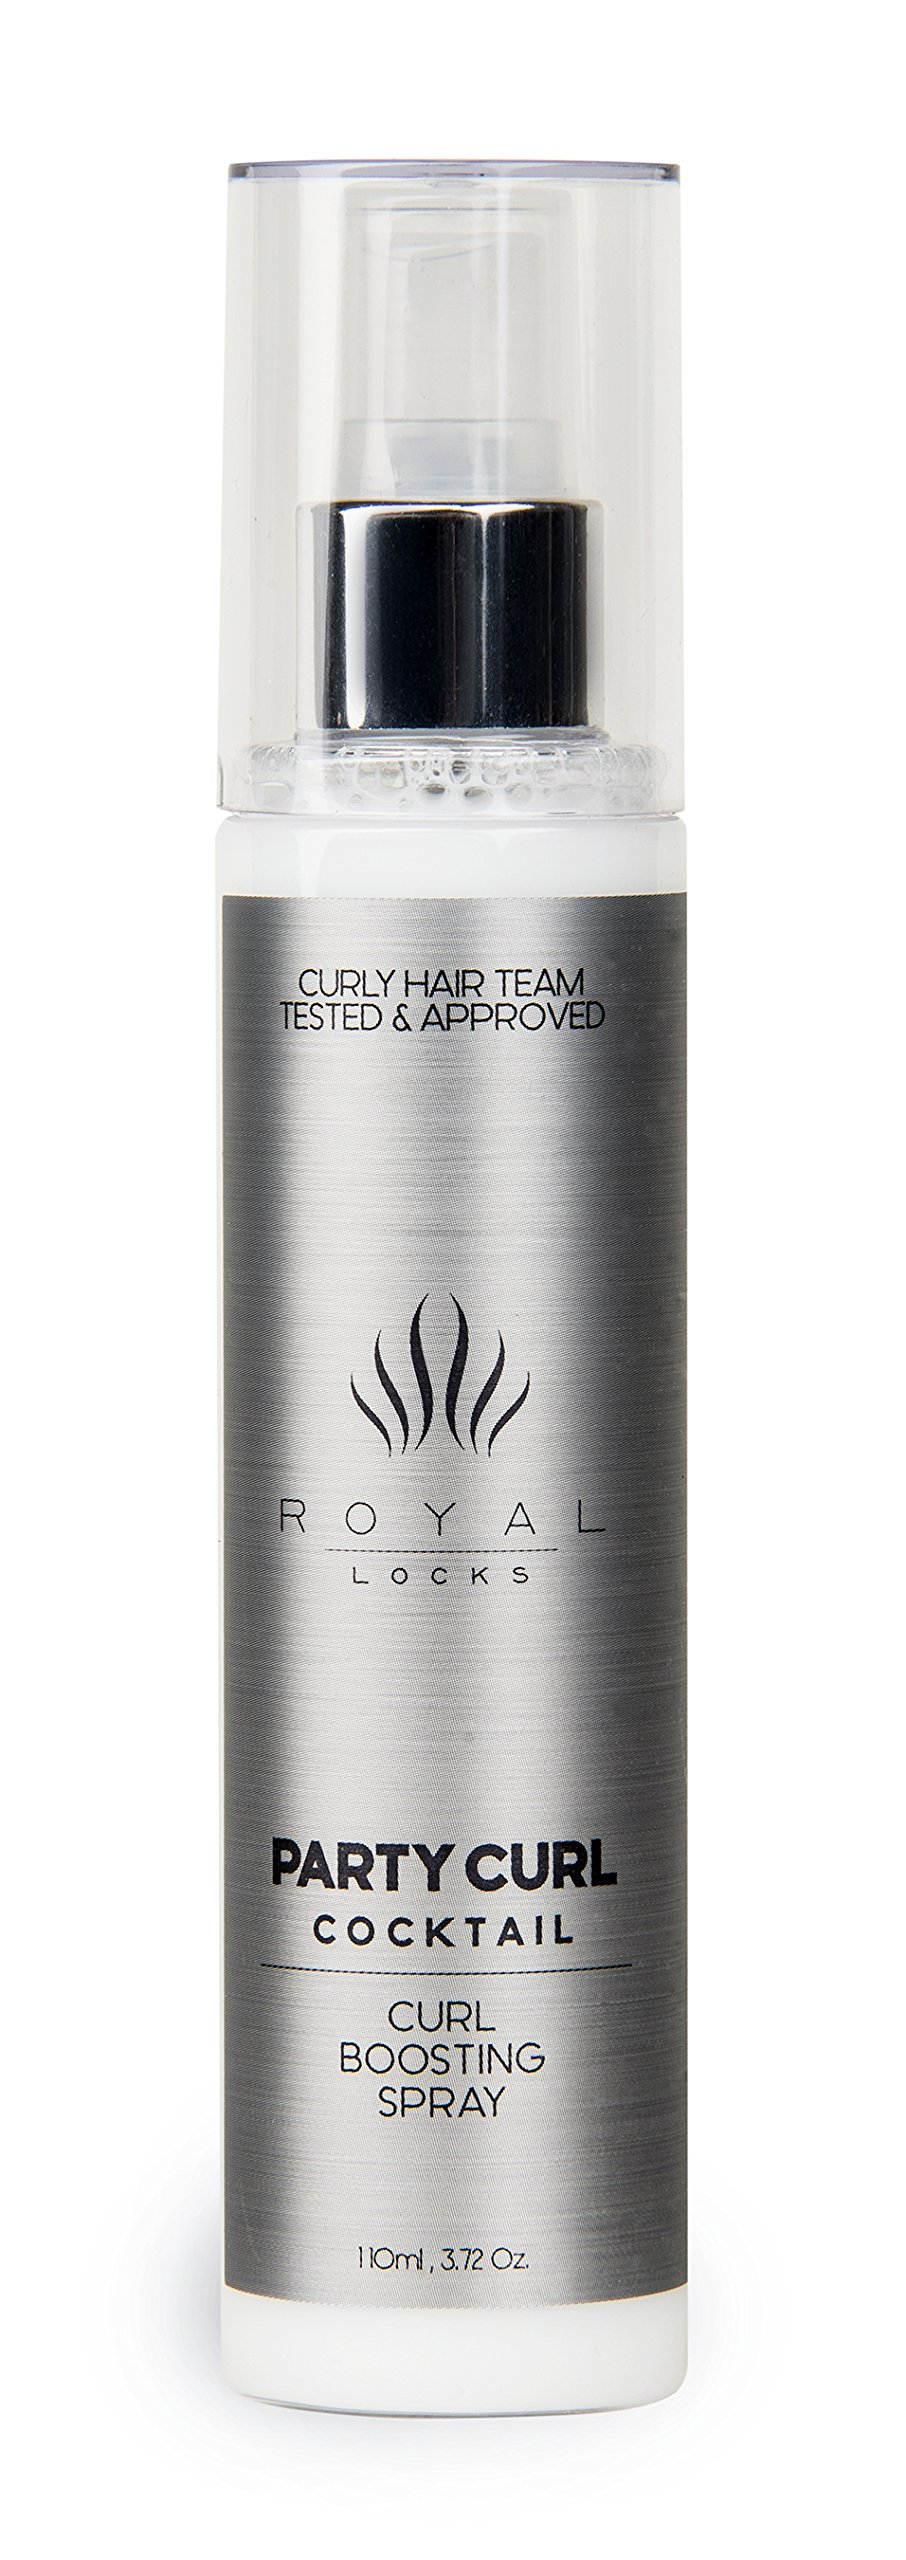 Curly Hair Recharging and Enhancing Curl Spray Party Curl Cocktail by Royal Locks. Defined and Moisturized Curls Without Build Up . Argan Oil Infused, UV and Thermal Protection